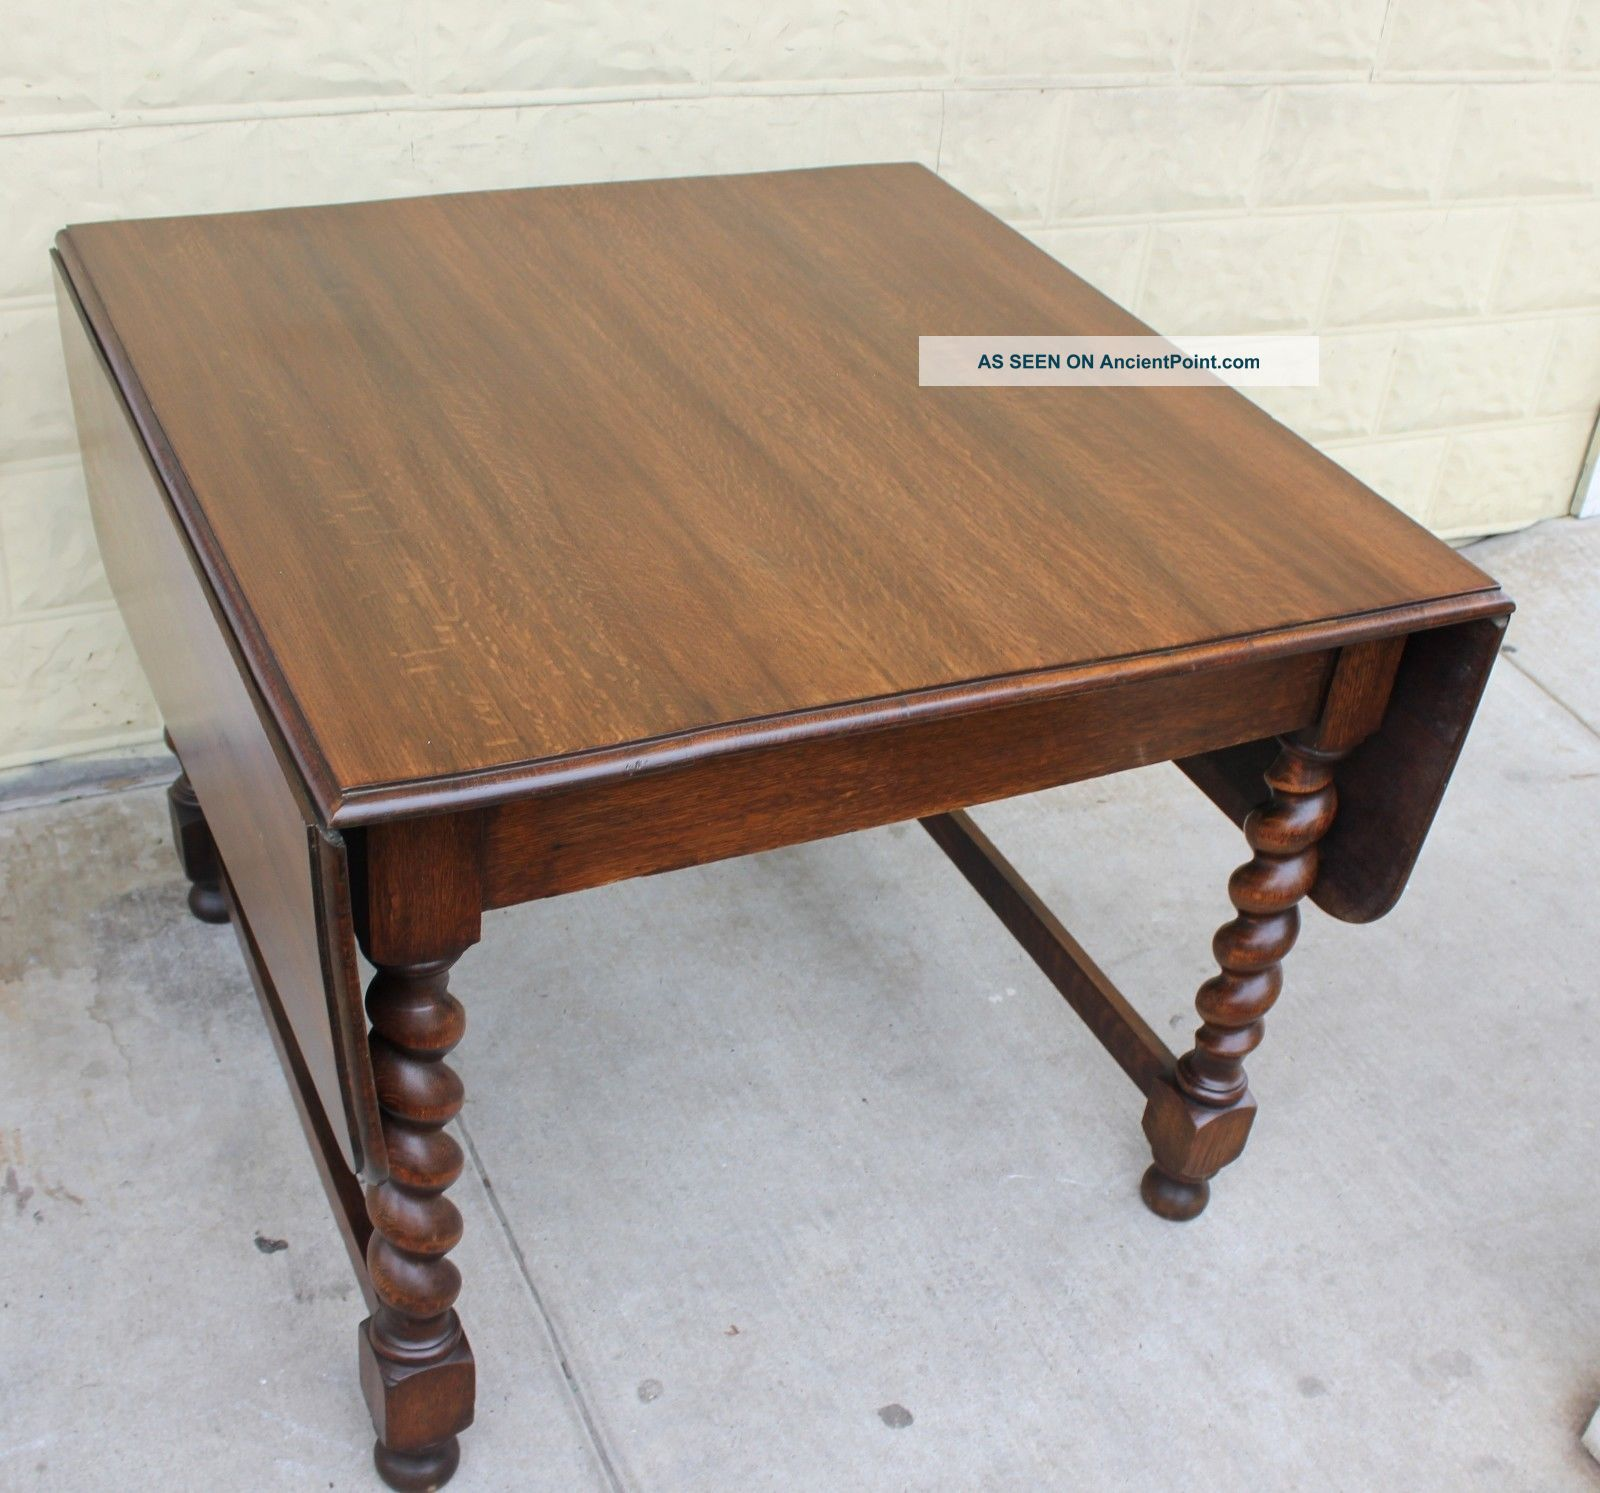 English Antique Oak Drop Leaf Kitchen Dining Table With Barley Twist